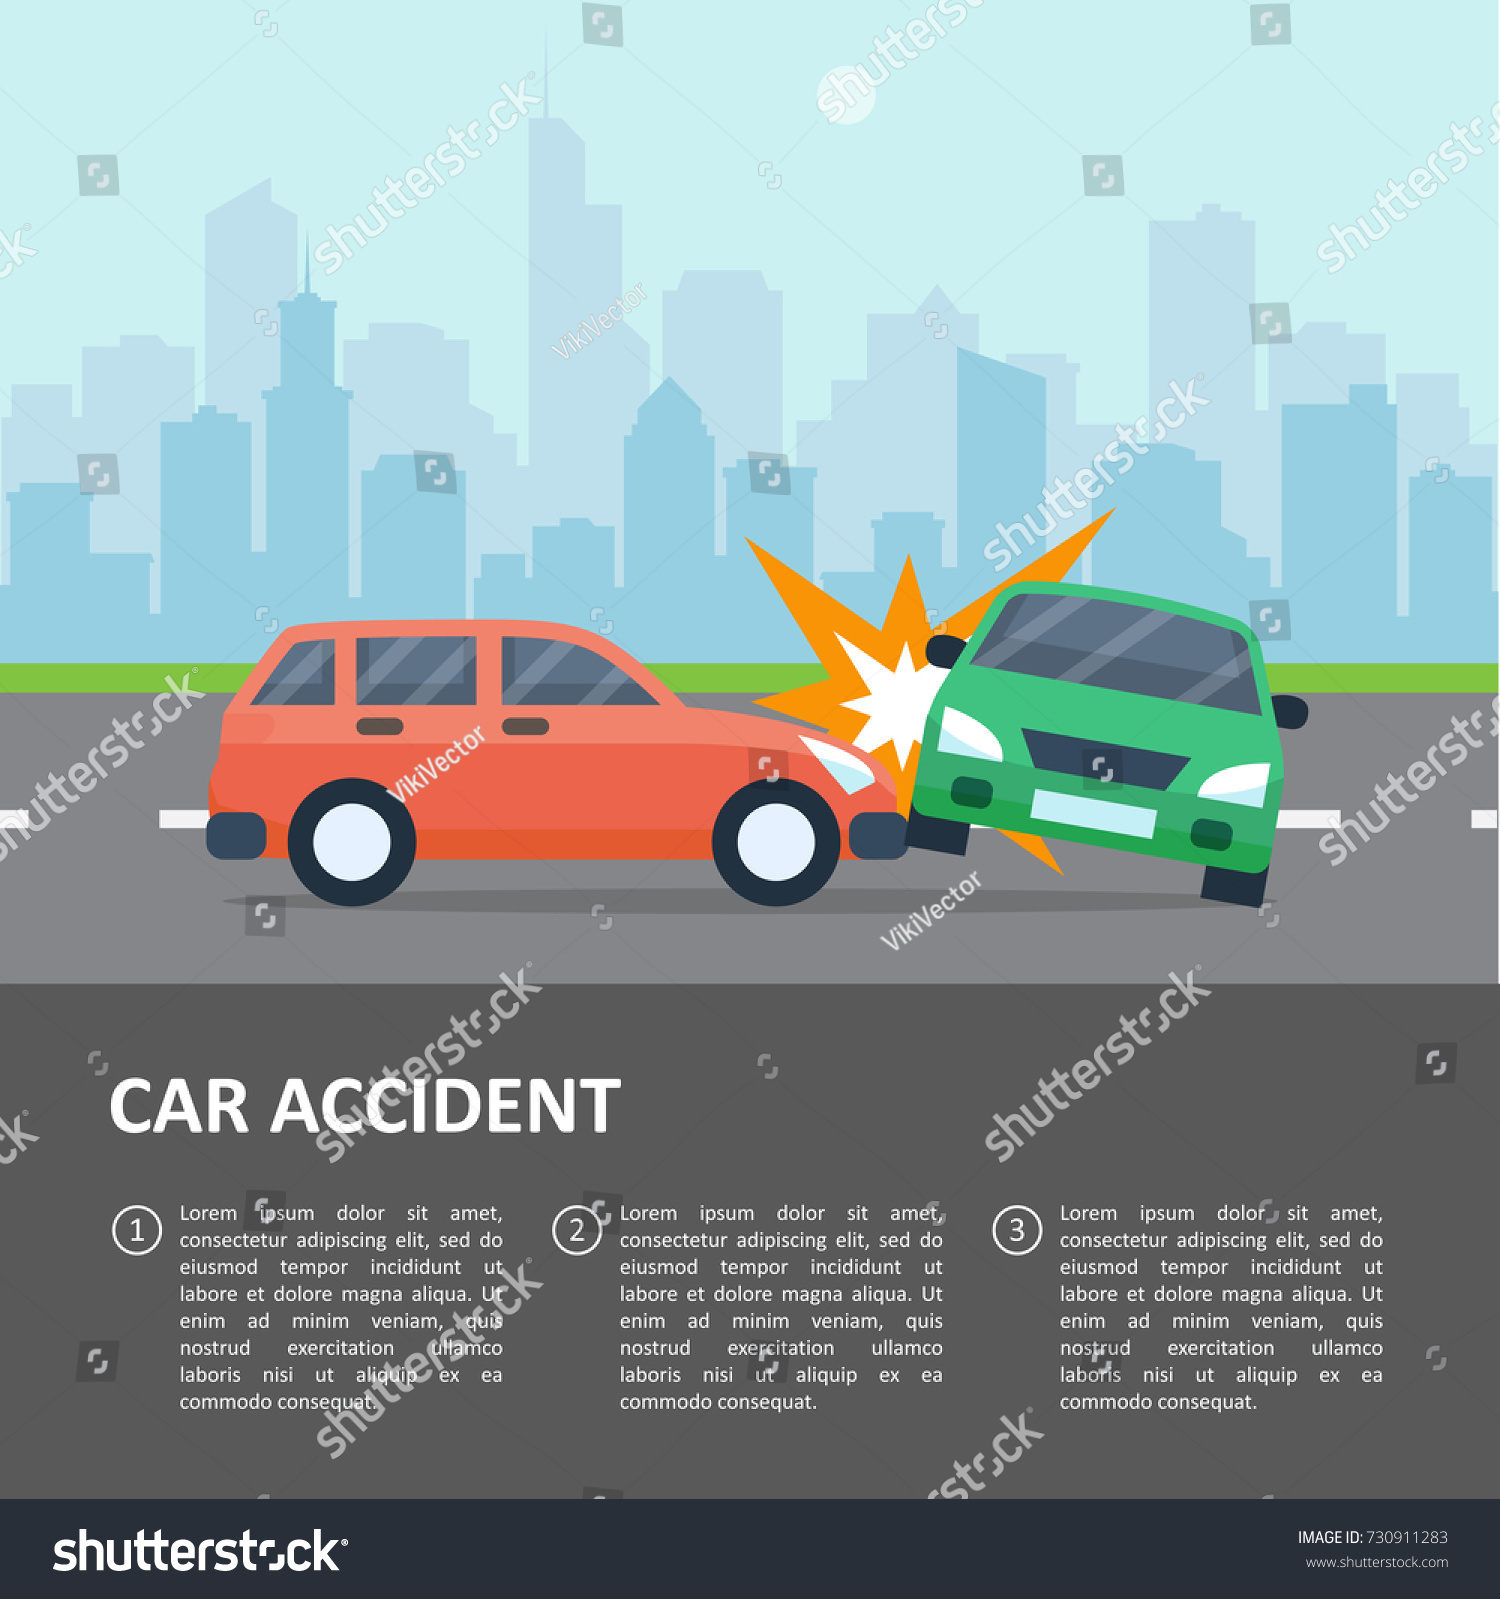 Car Accident Template Street Crash Vehicle Stock Vector HD (Royalty ...